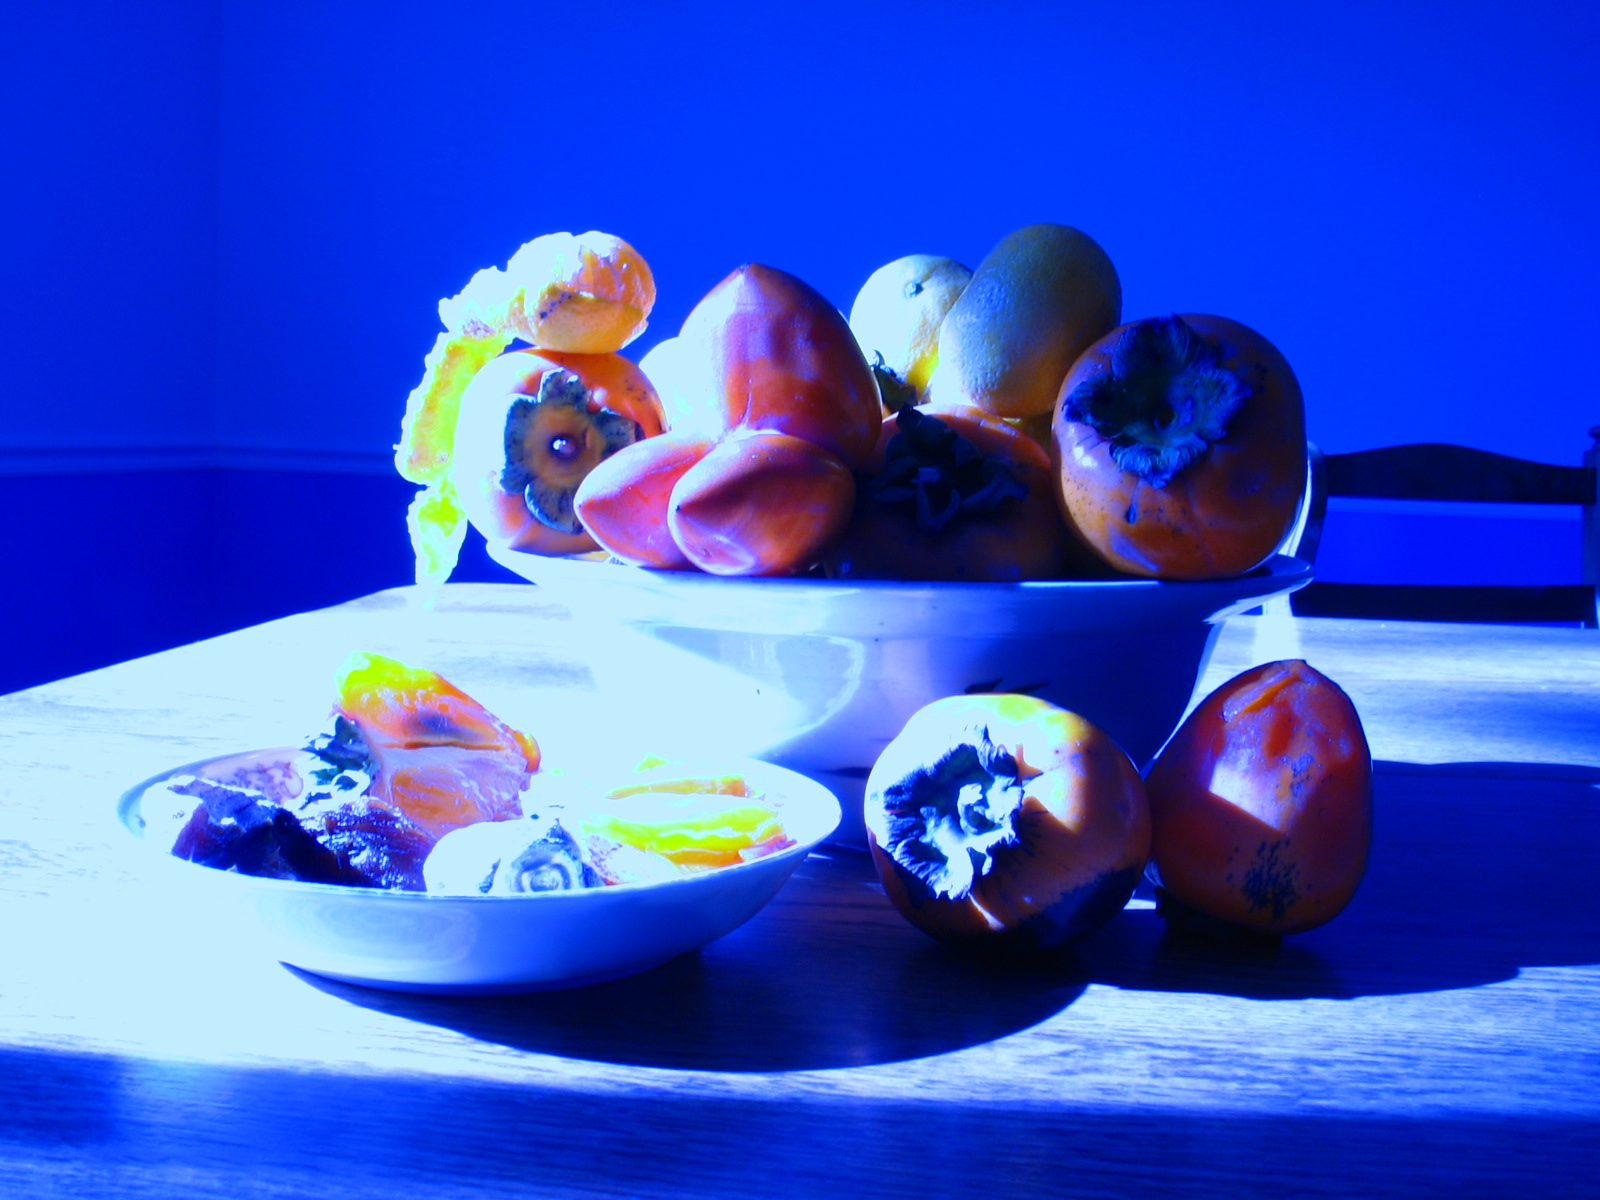 Persimmons and mandarins.